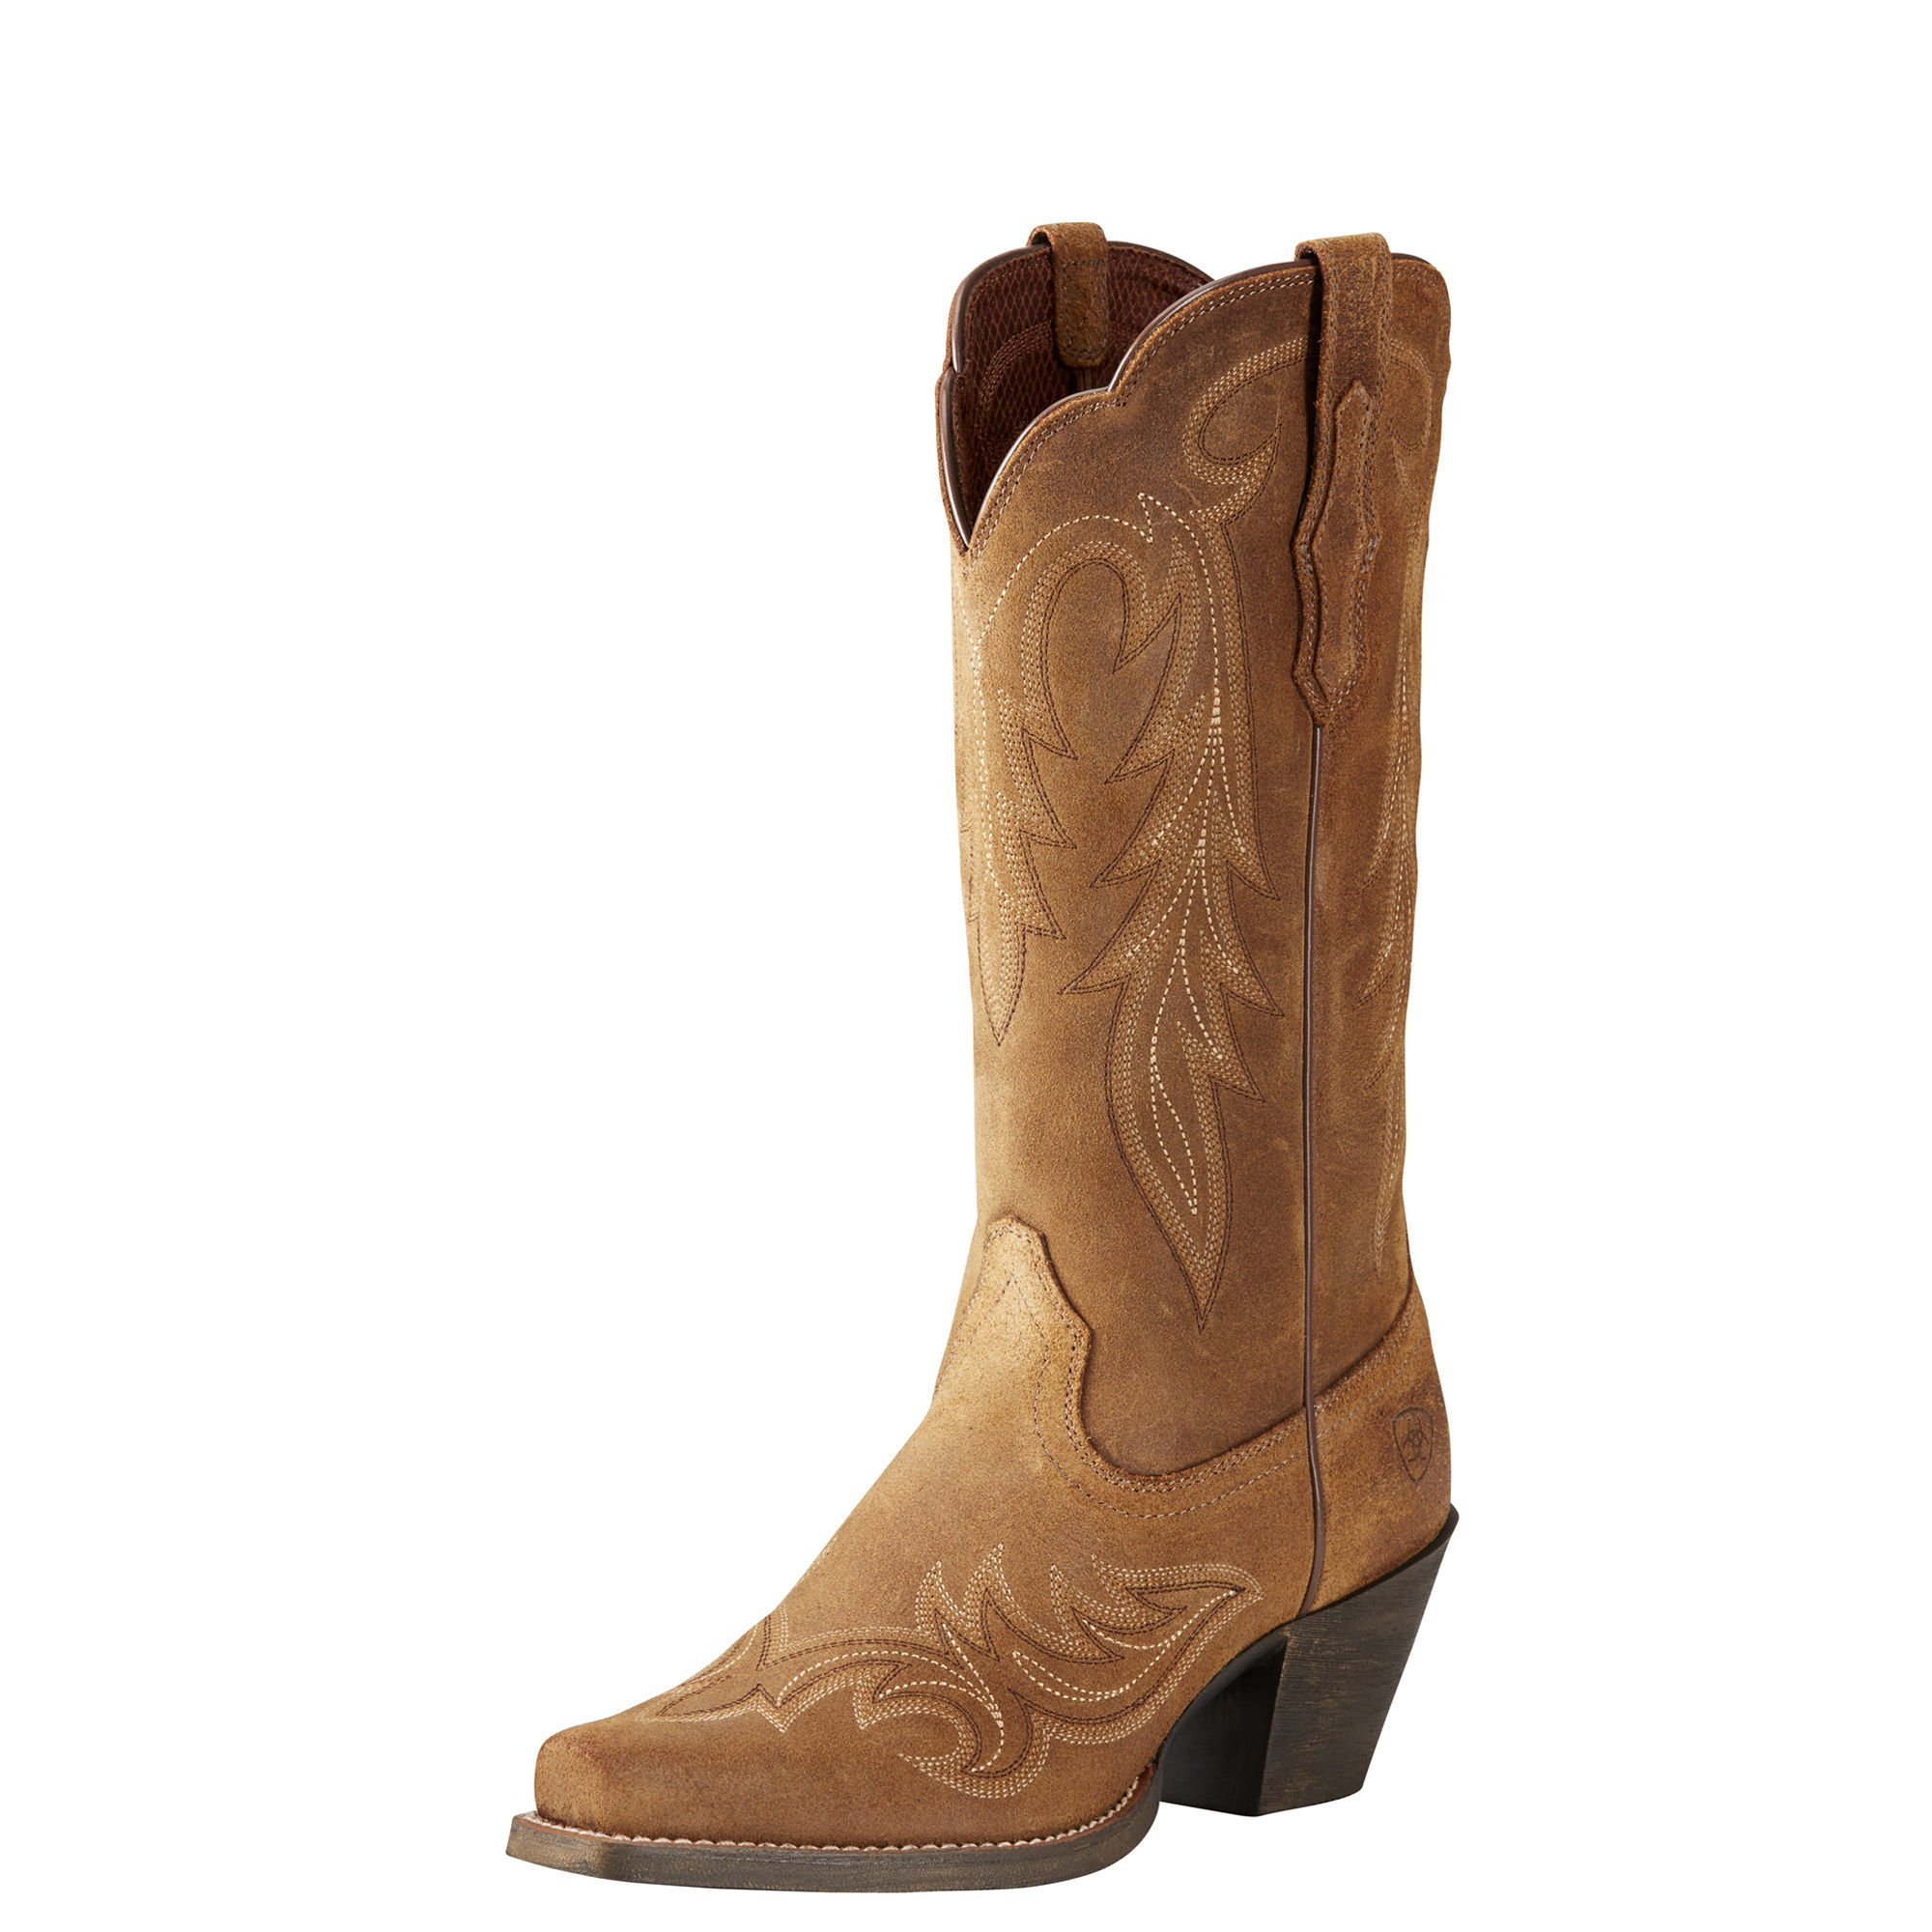 Ariat Women's Round up Renegade Work Boot, Old West Tan, 9.5 B US